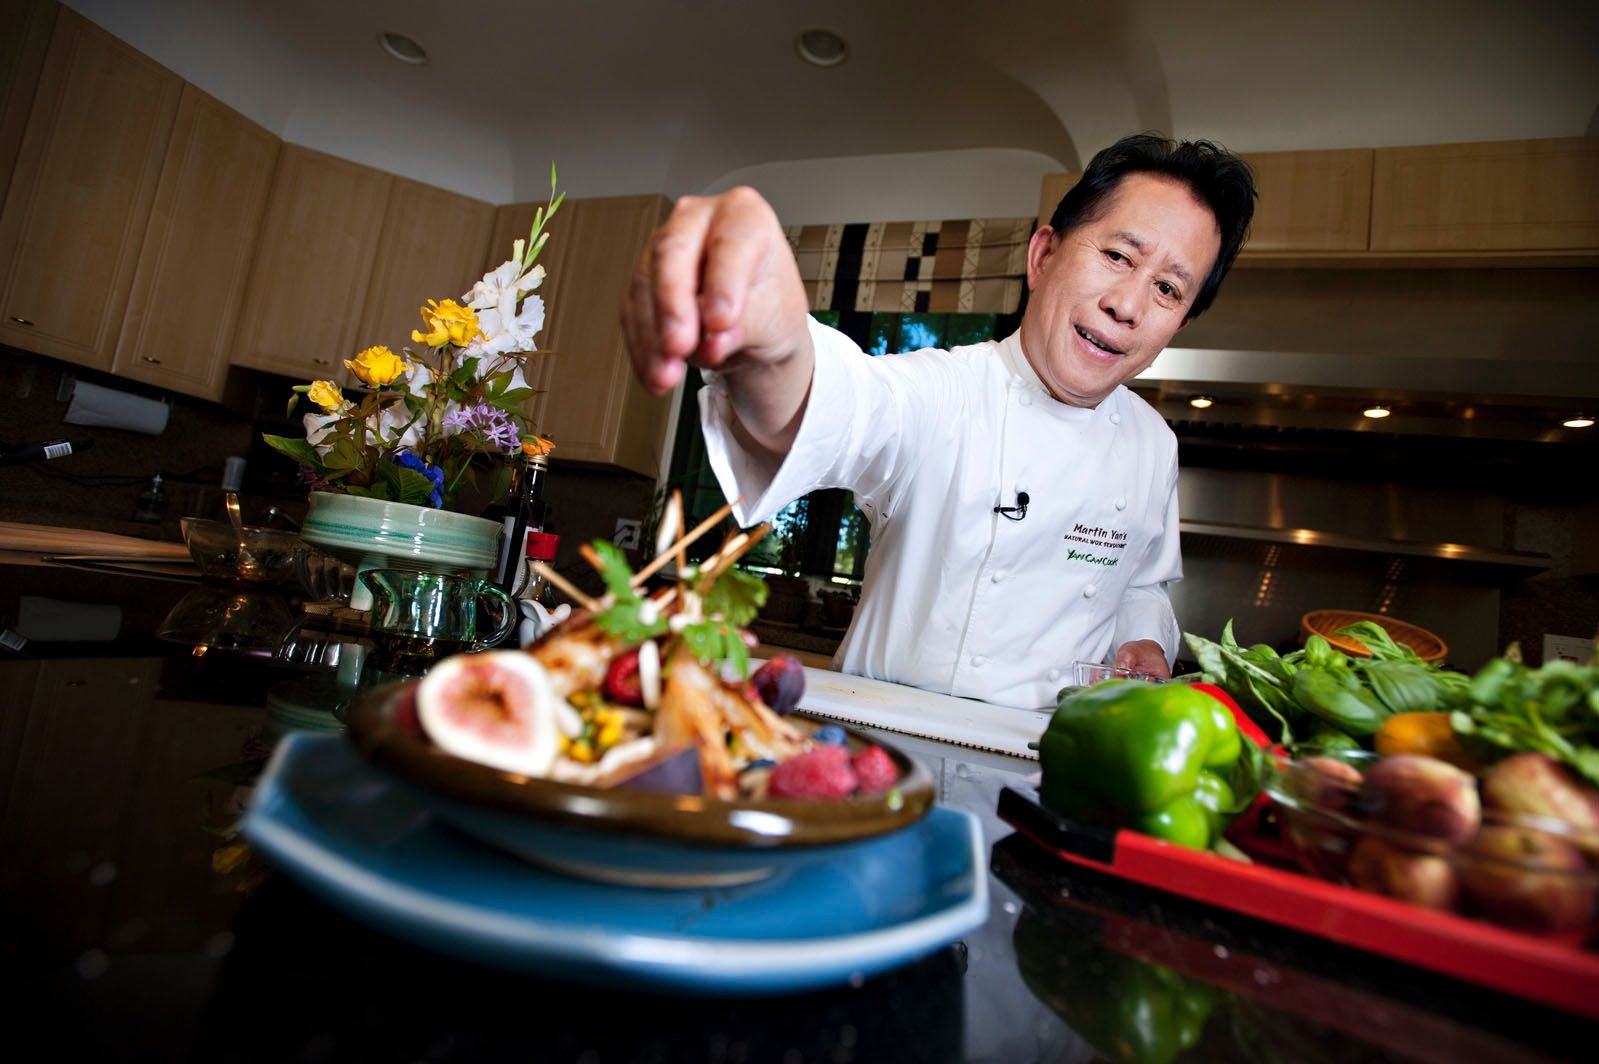 Yan still cooks chef at large forumfinder Image collections